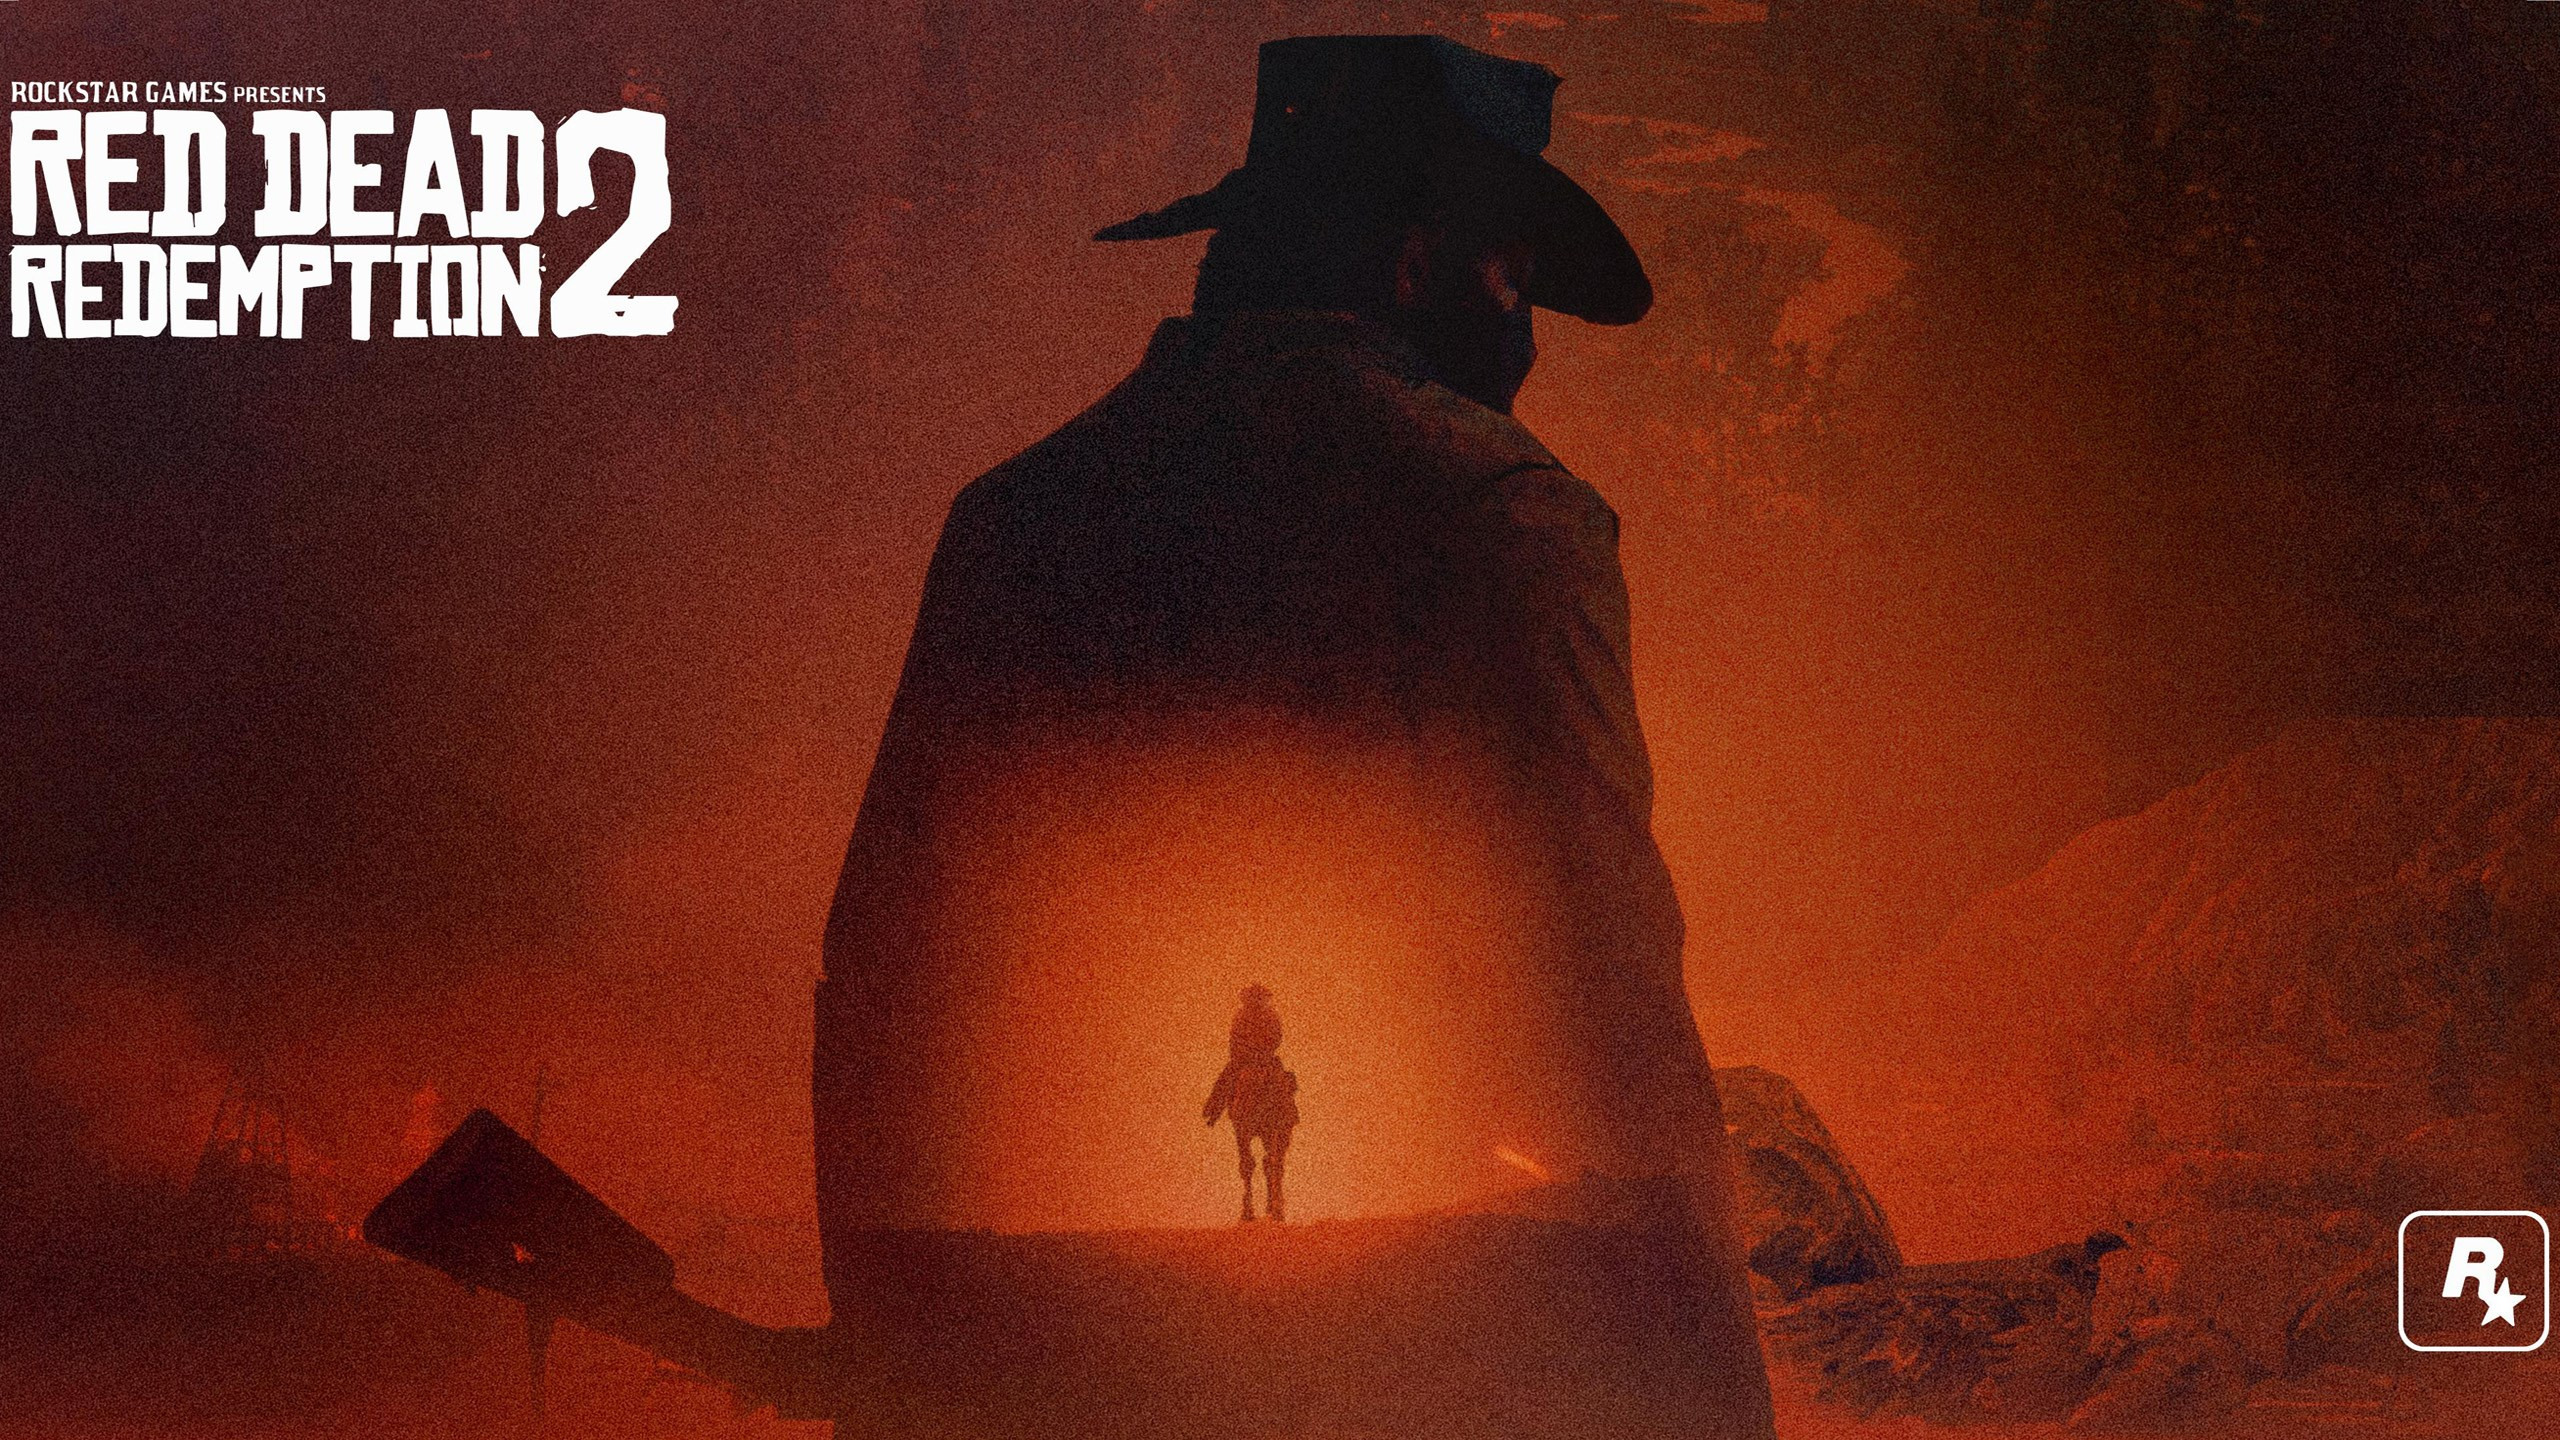 Red Dead Redemption 2 Wallpapers 4k For Desktop Iphone And